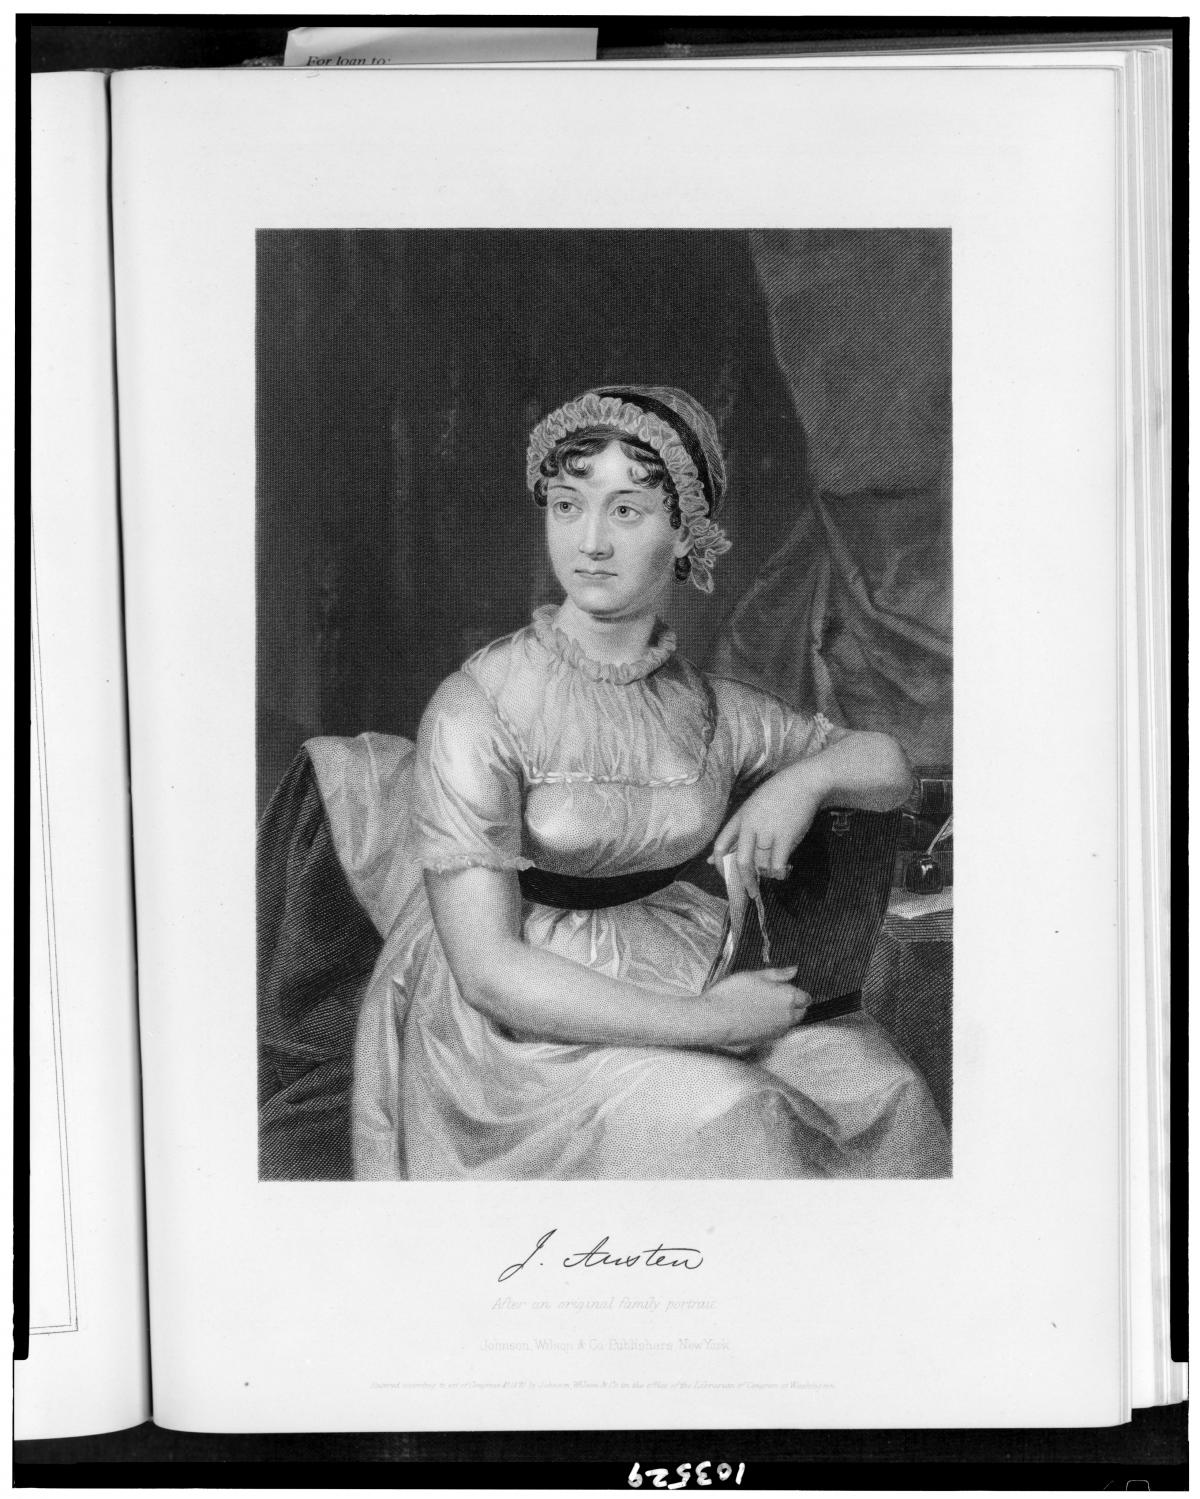 Austen in a white dress and bonnet, seated, with her elbow resting on a table